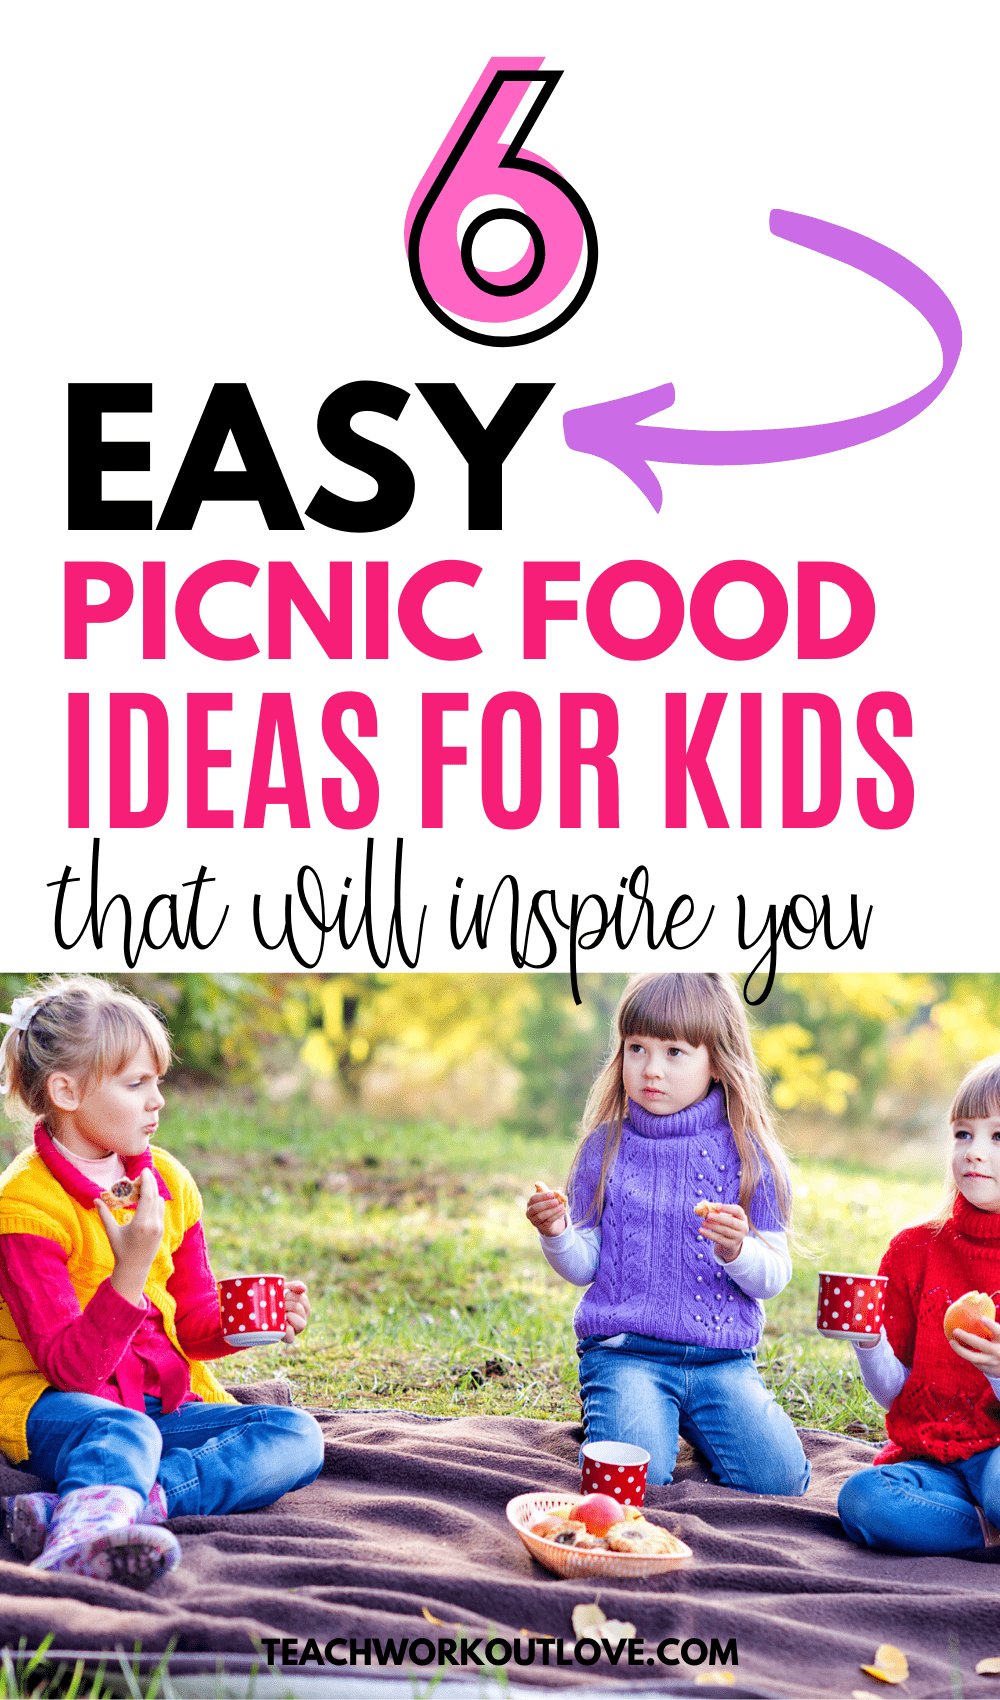 Picnics are meant to be easy, breezy fun, but can be tough sometimes. Check out a few of our favorite picnic food ideas for kids to help you out!